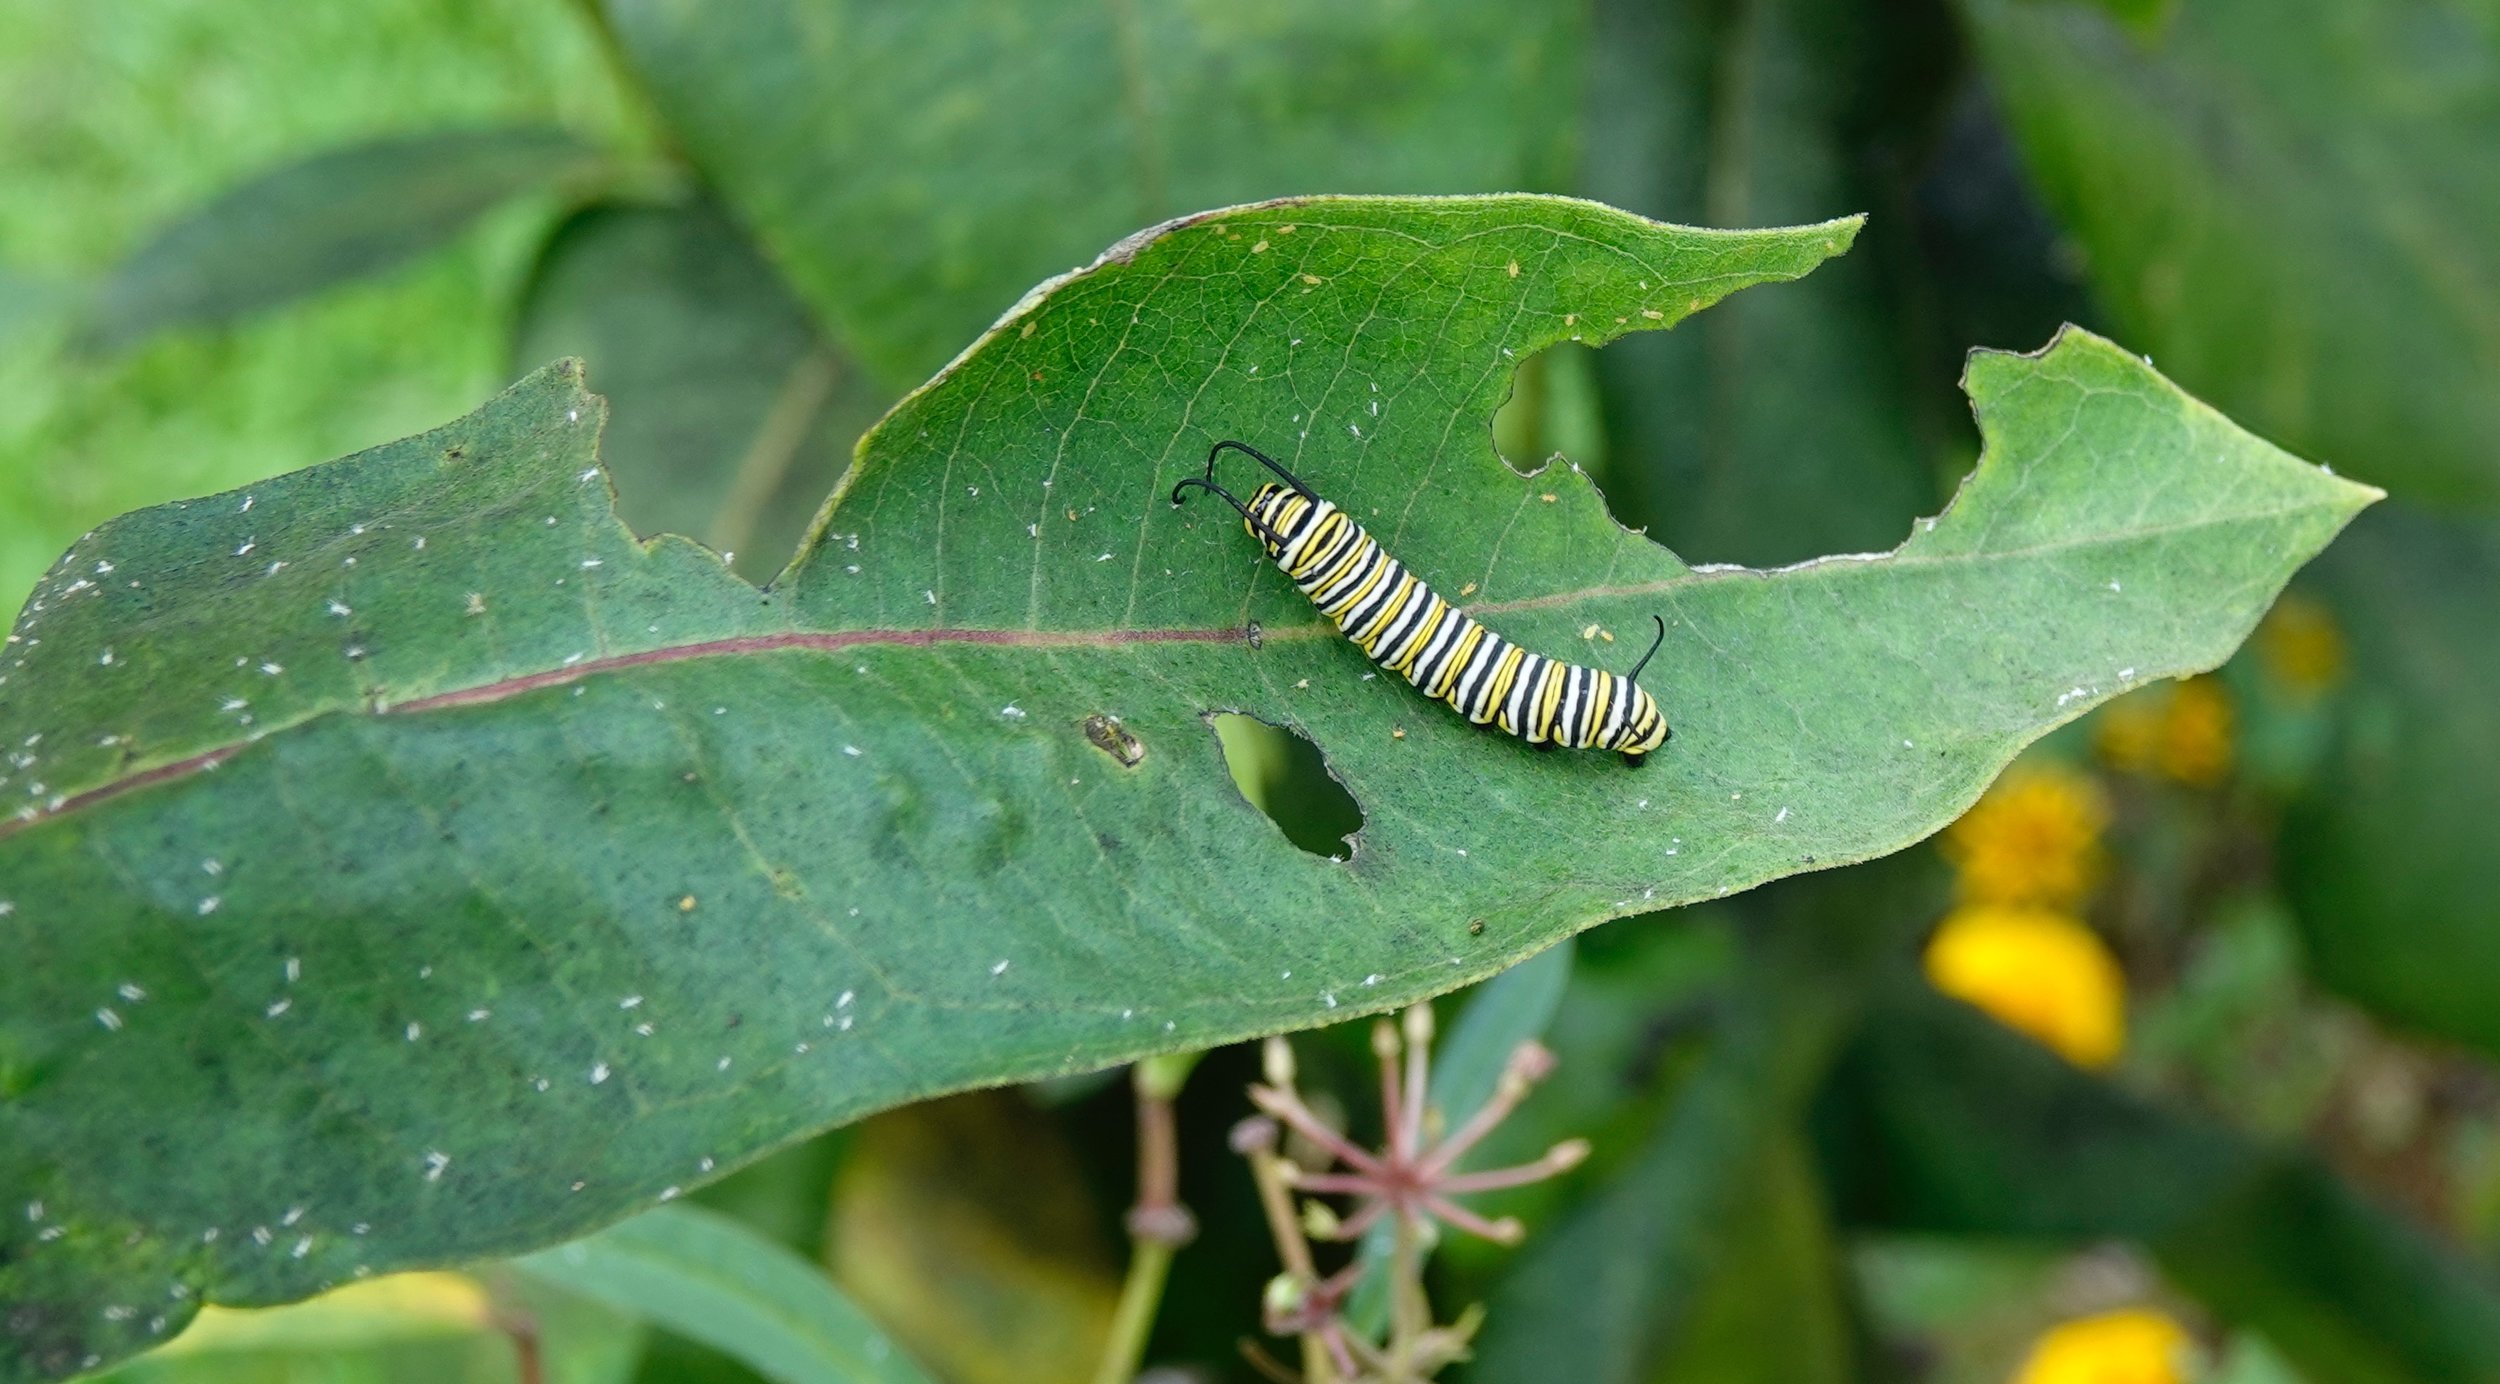 A caterpillar likes a salad.Lots of salads. In just two weeks the caterpillar sheds its skin five times. It outgrows its old skins.